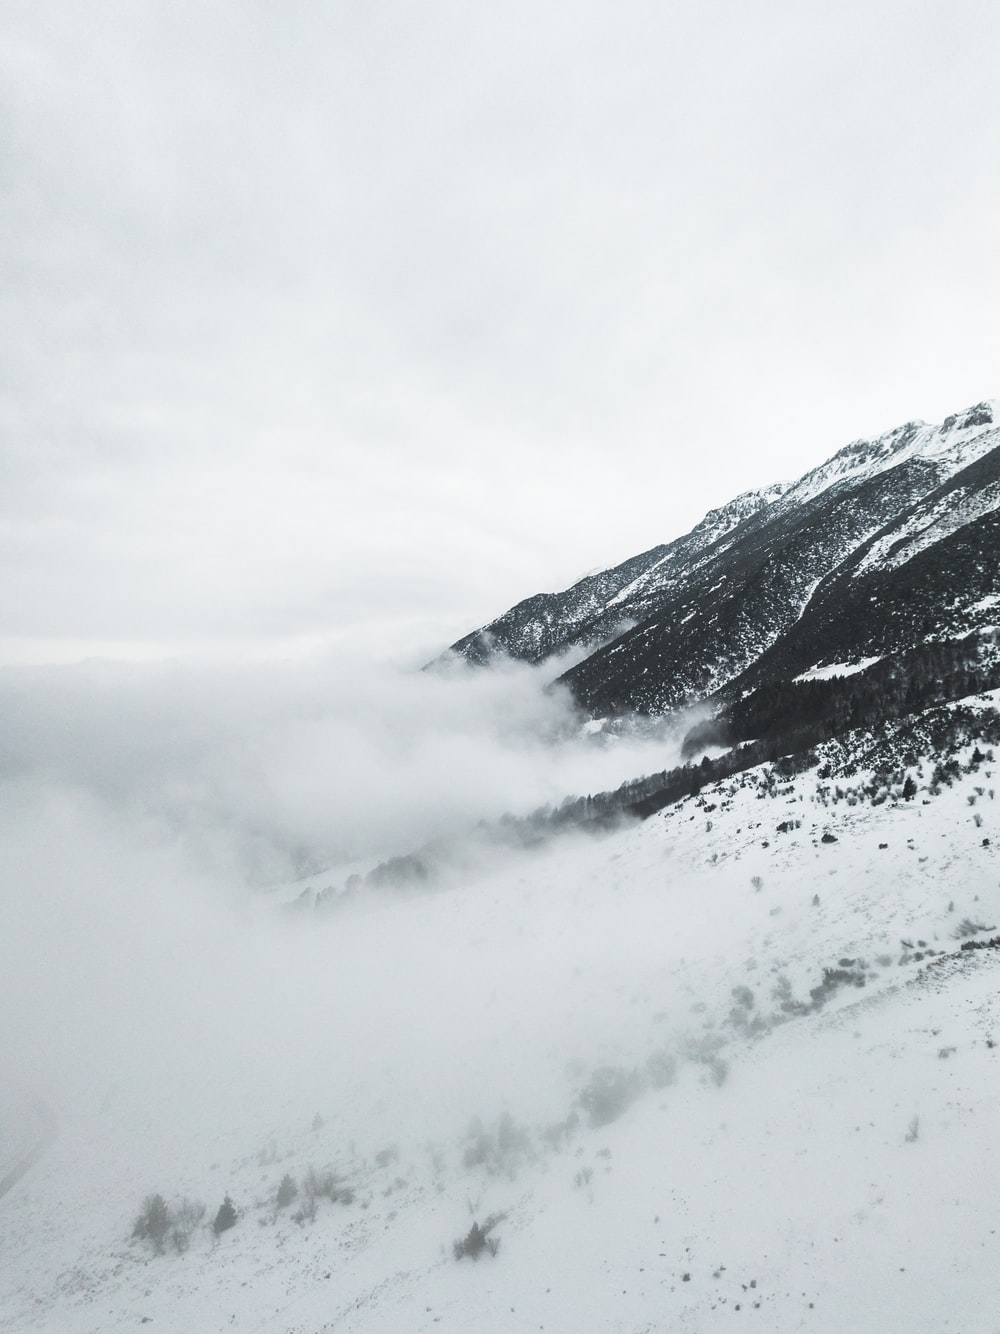 snow capped mountain under cloudy sky at daytime